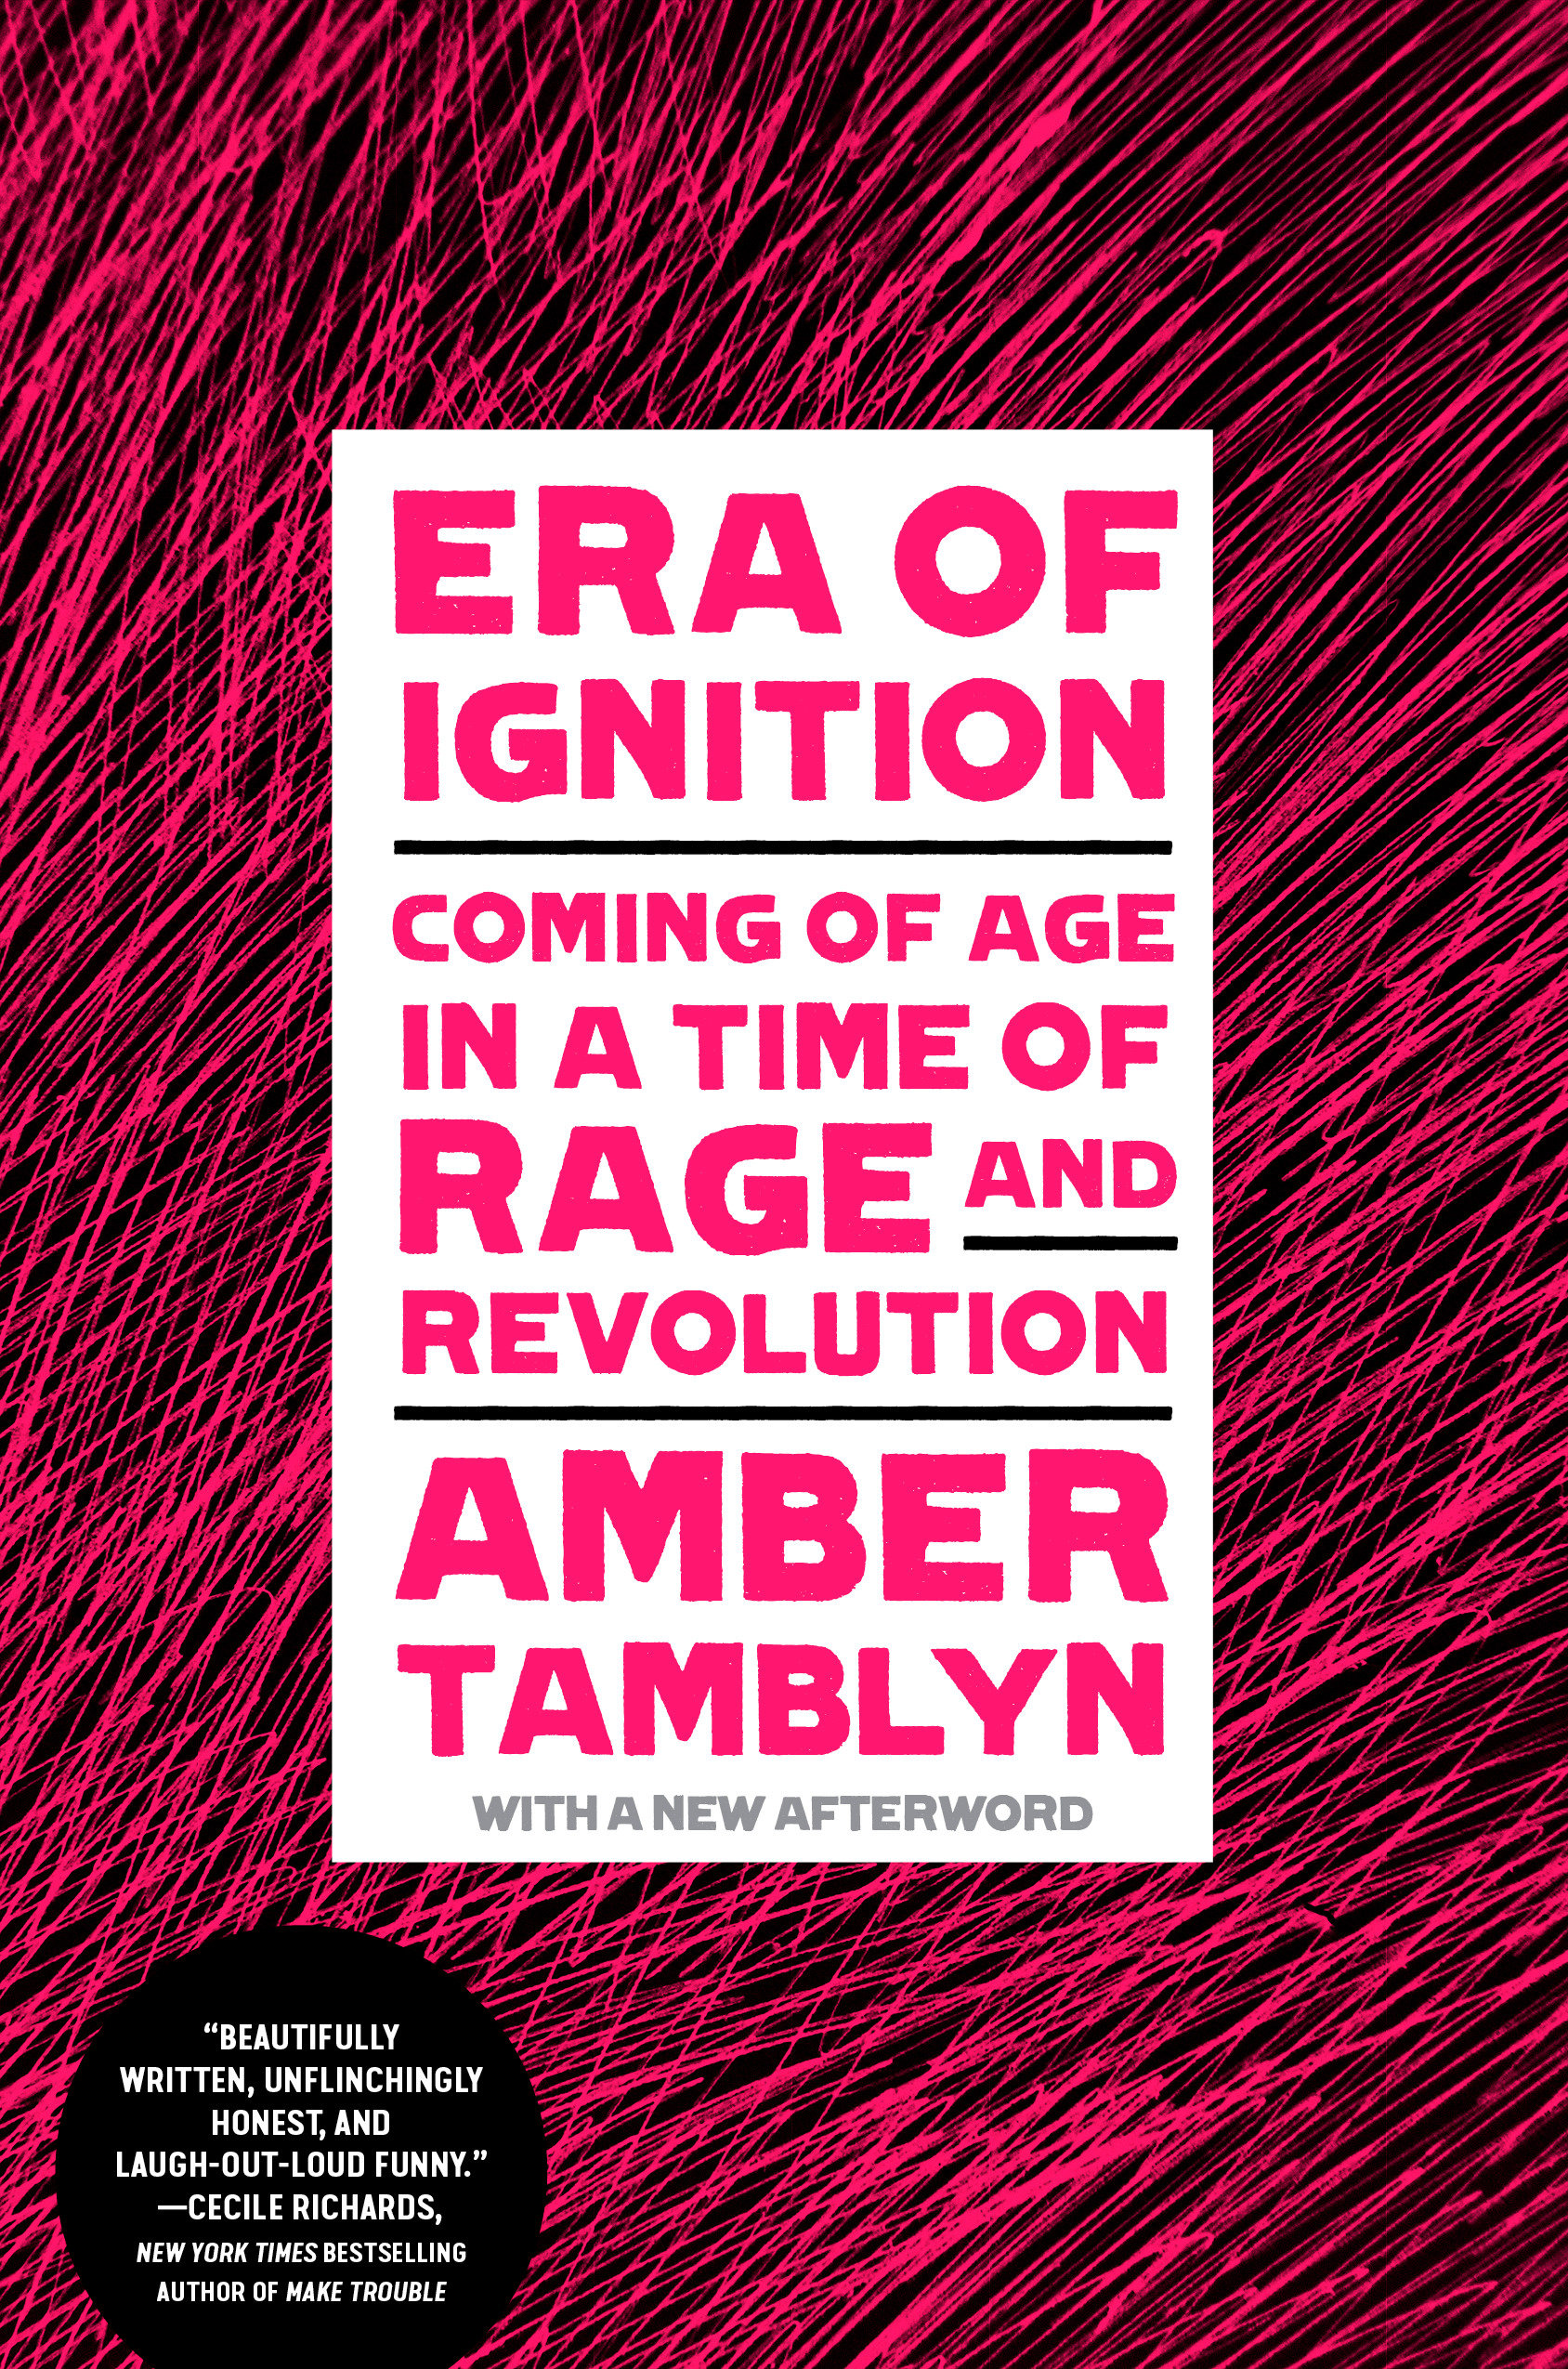 Era of ignition coming of age in a time of rage and revolution cover image